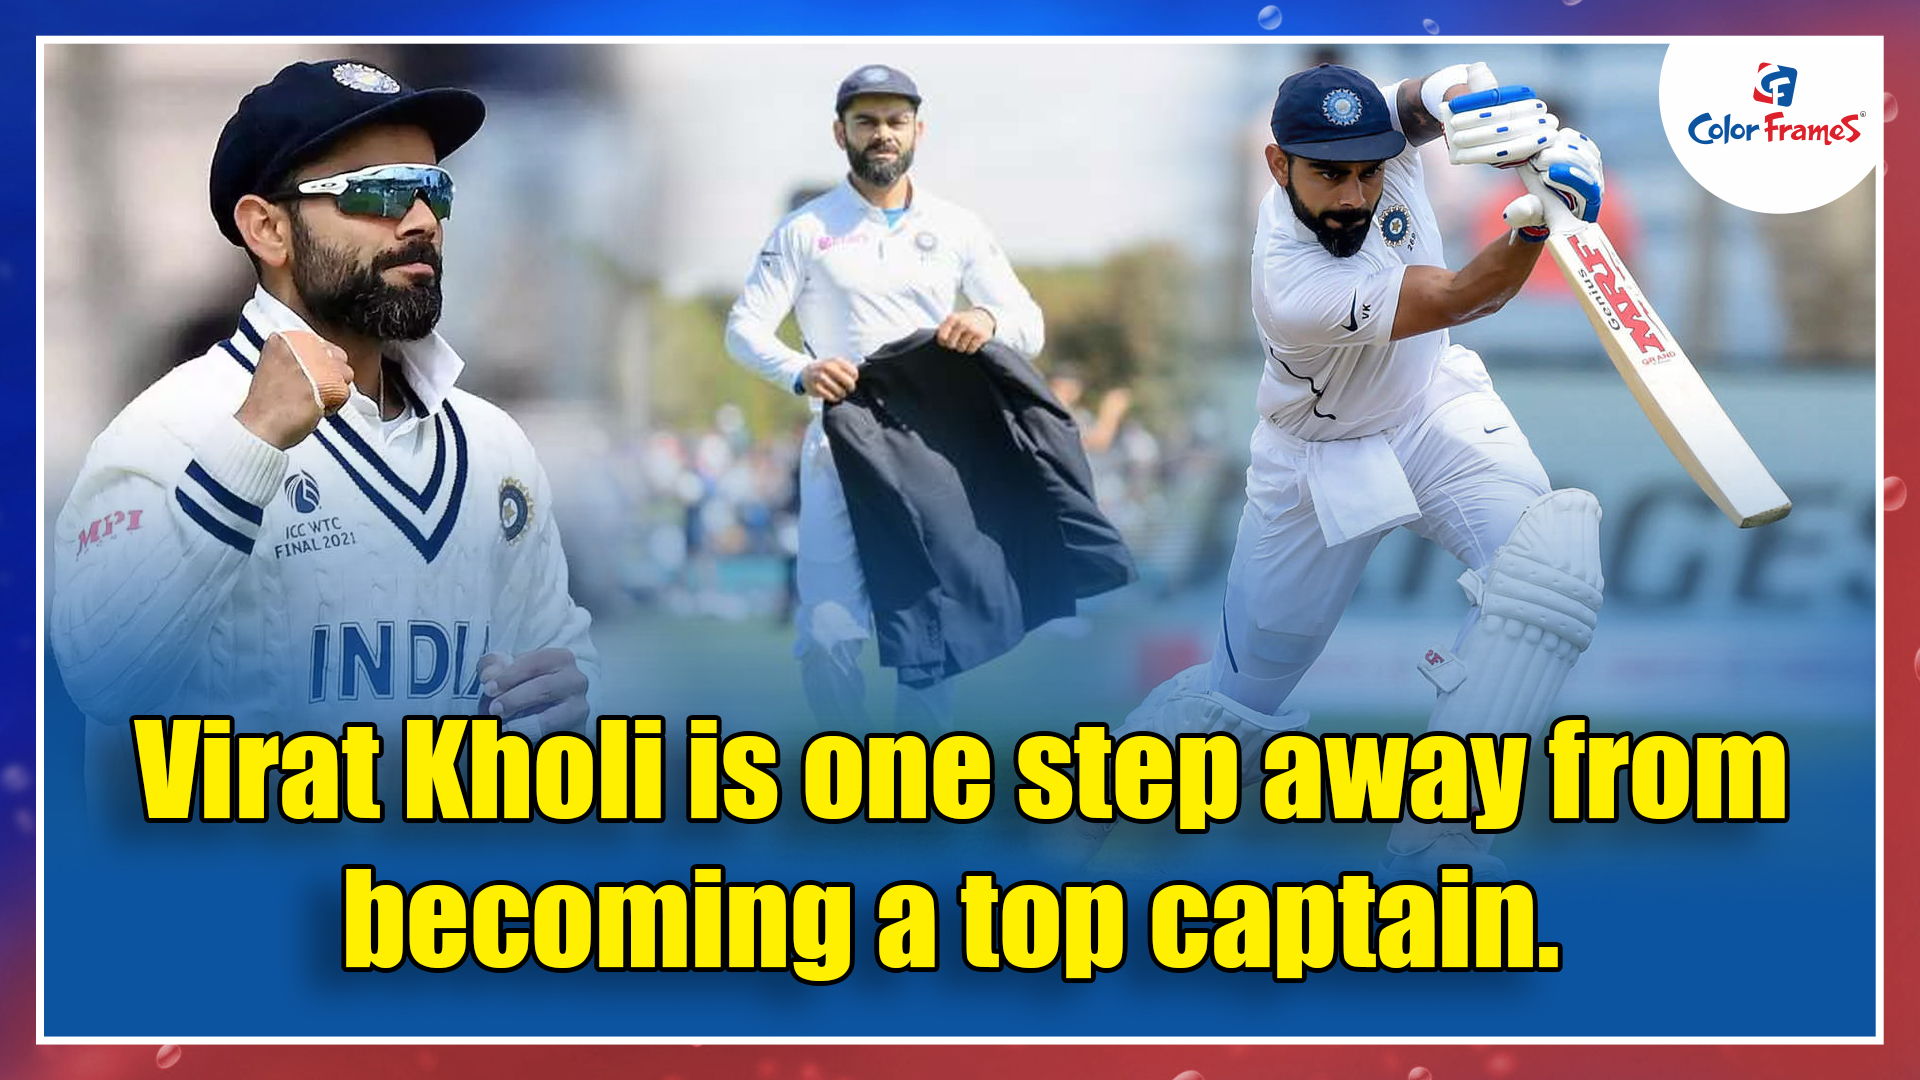 Virat Kholi is one step away from becoming a top captain.